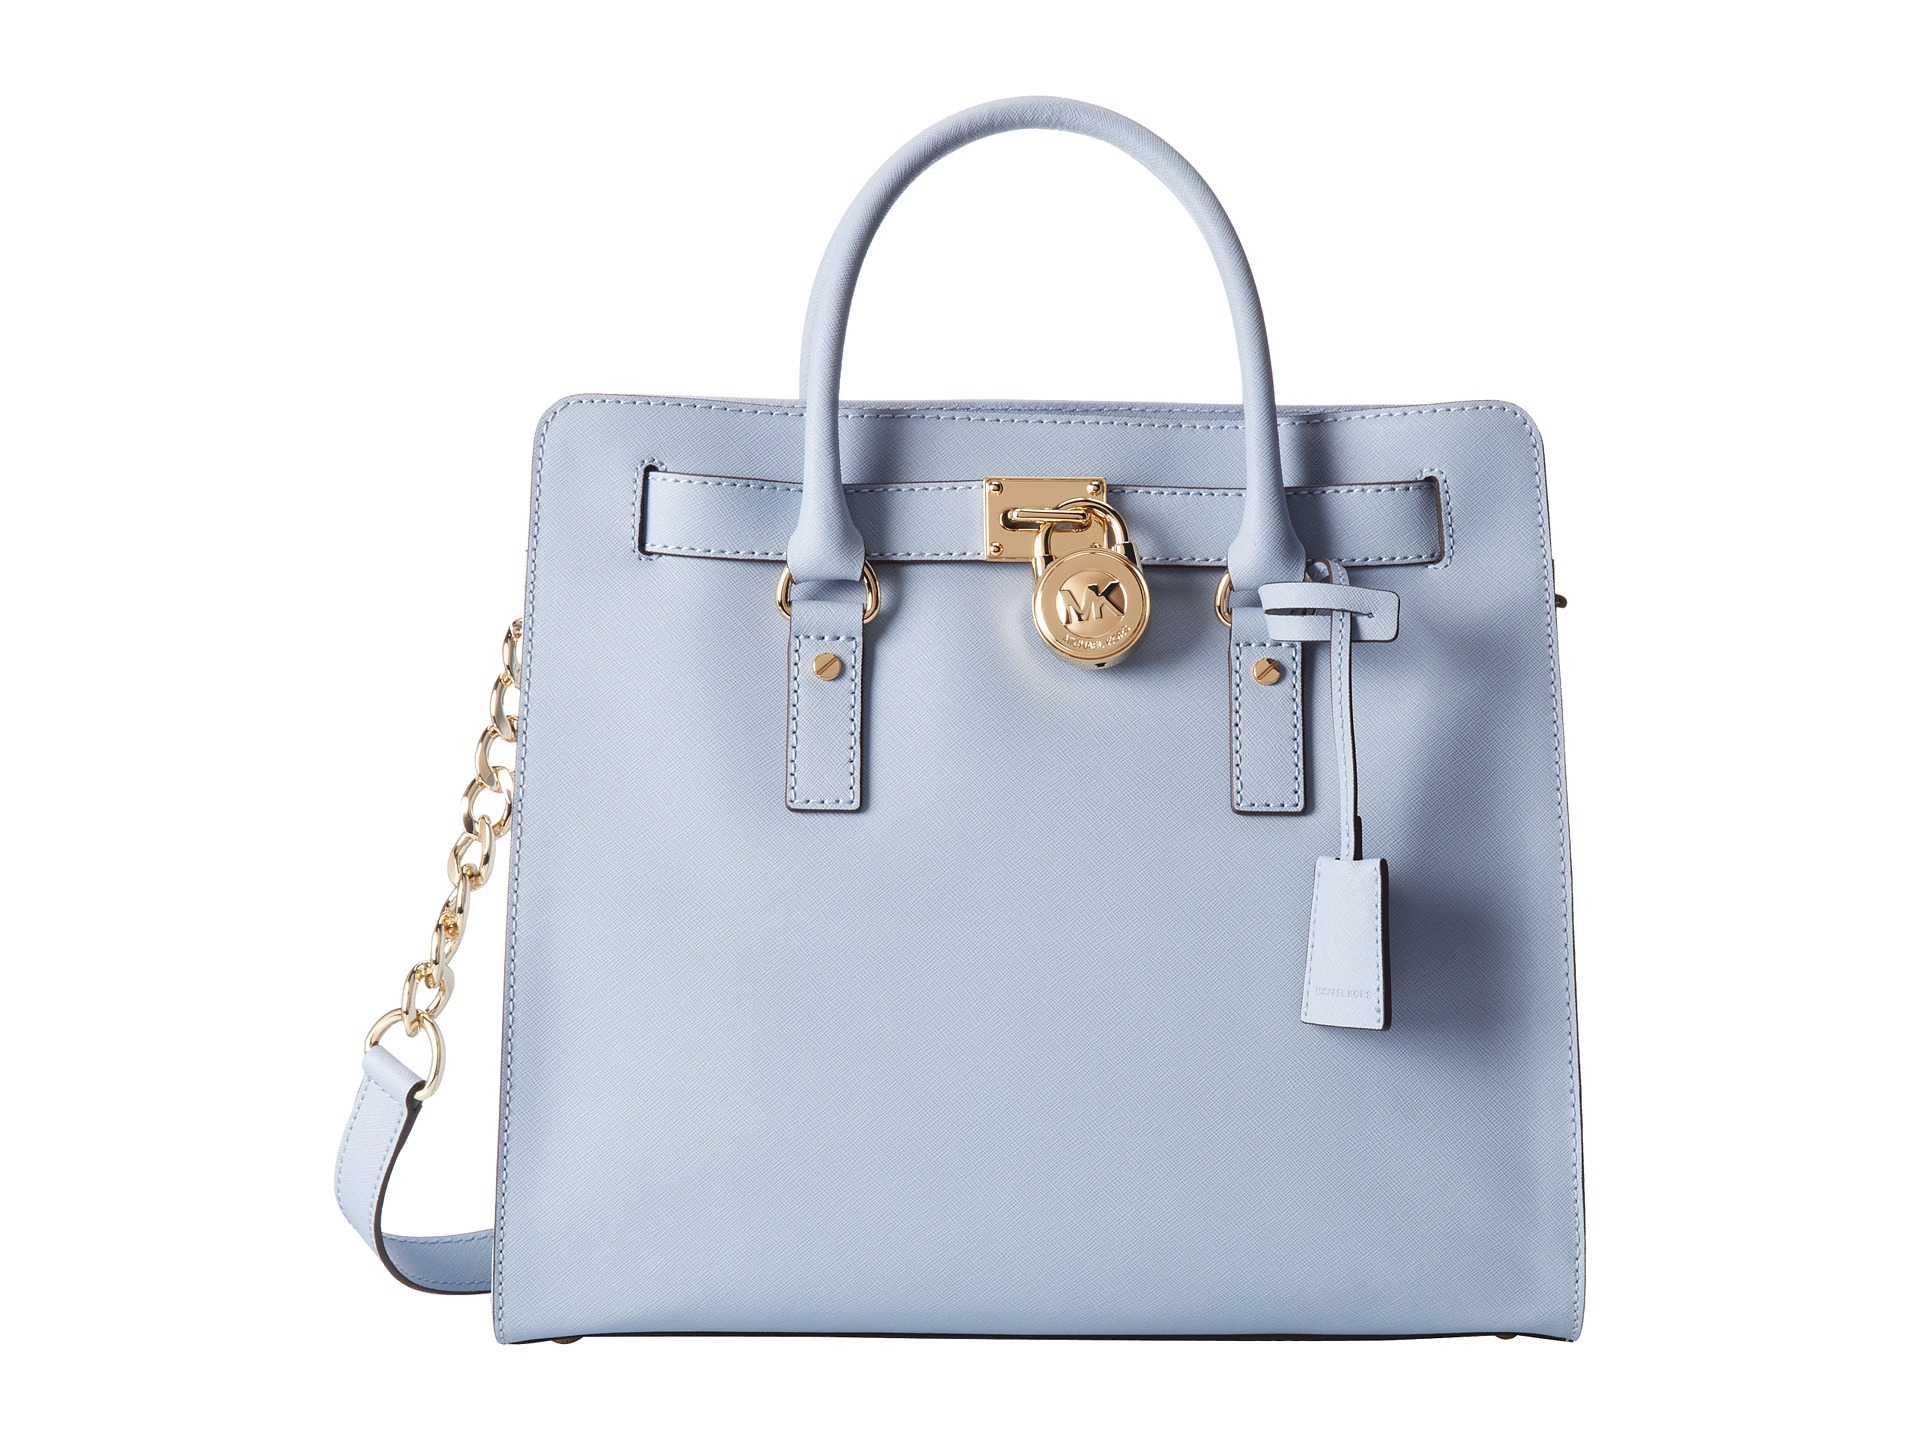 c92b0a220fae Lyst - MICHAEL Michael Kors Hamilton Large North south Tote in Blue